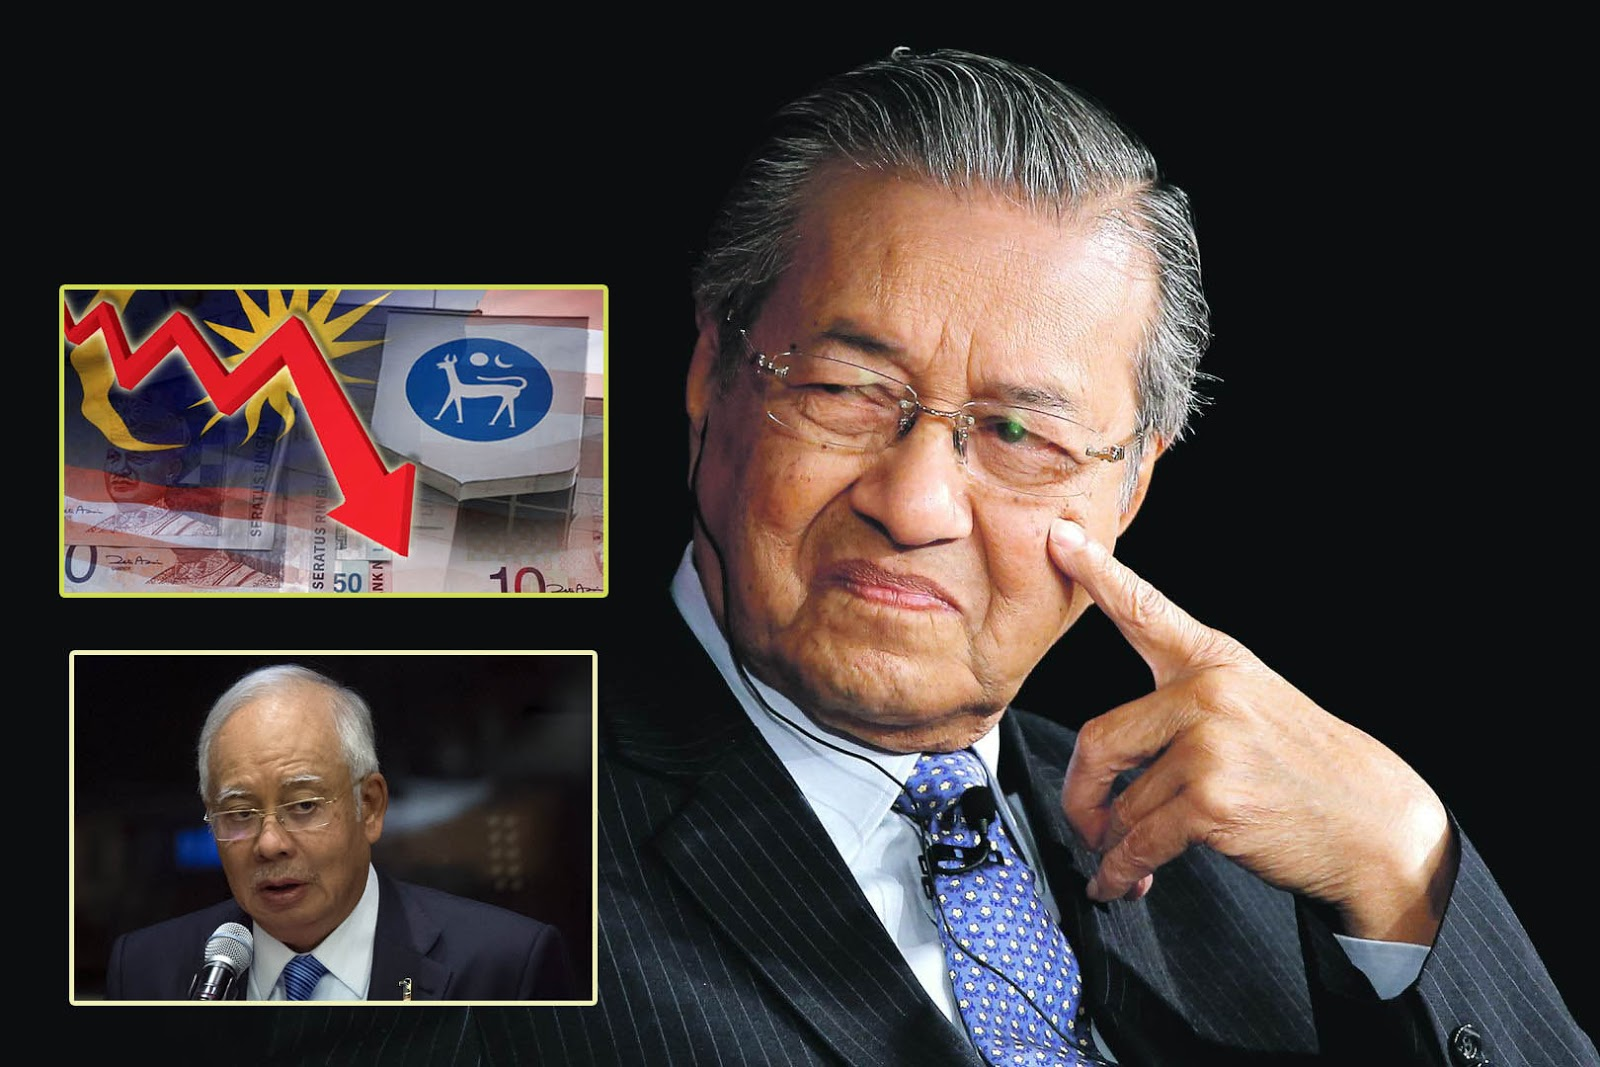 contributions of tun dr mahathir Petaling jaya: dr mahathir mohamad's legacy is secure despite efforts to erase his contributions to the nation during his 22 years as prime minister, says a think-tank referring to speculation of pressure for institut pemikiran tun dr mahathir (ipdm) in universiti utara malaysia (uum) in kedah.